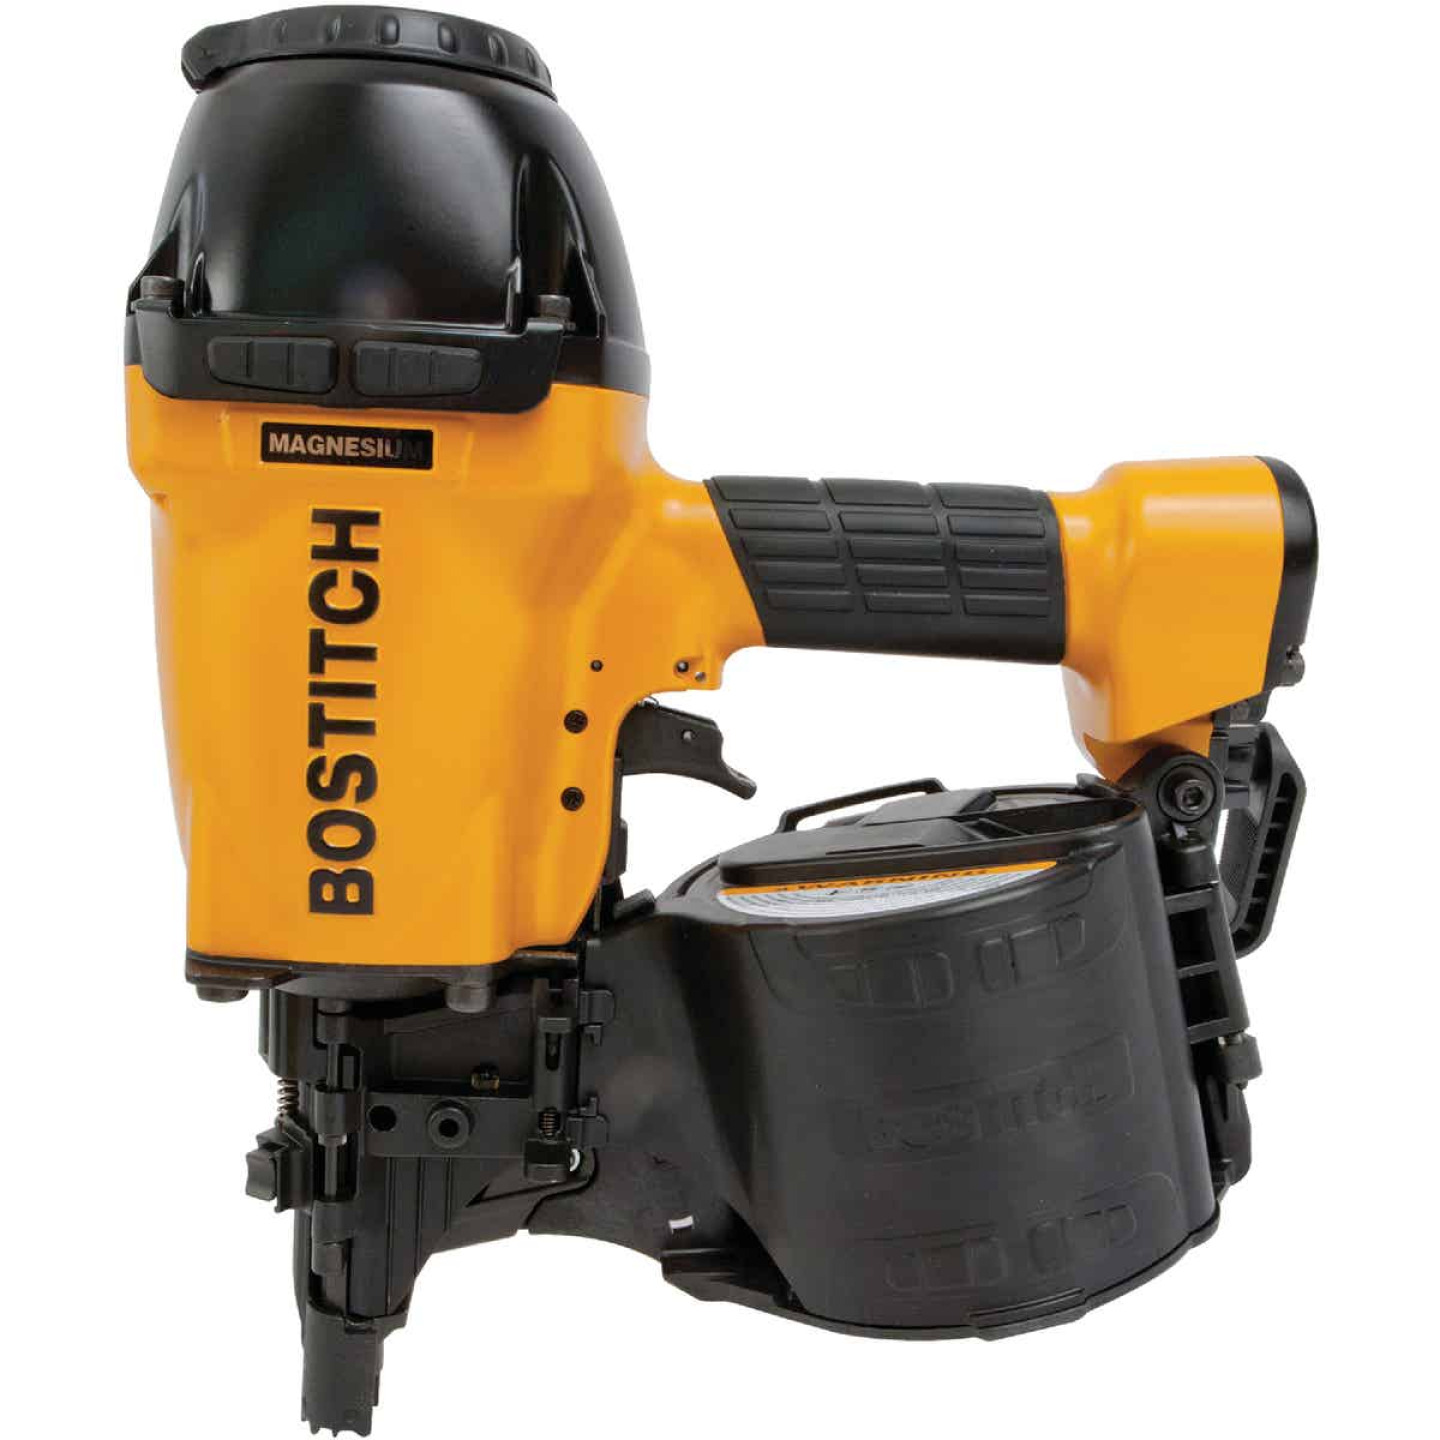 Bostitch 15 Degree 3-1/2 In. Wire Weld High-Power Framing Nailer Image 1